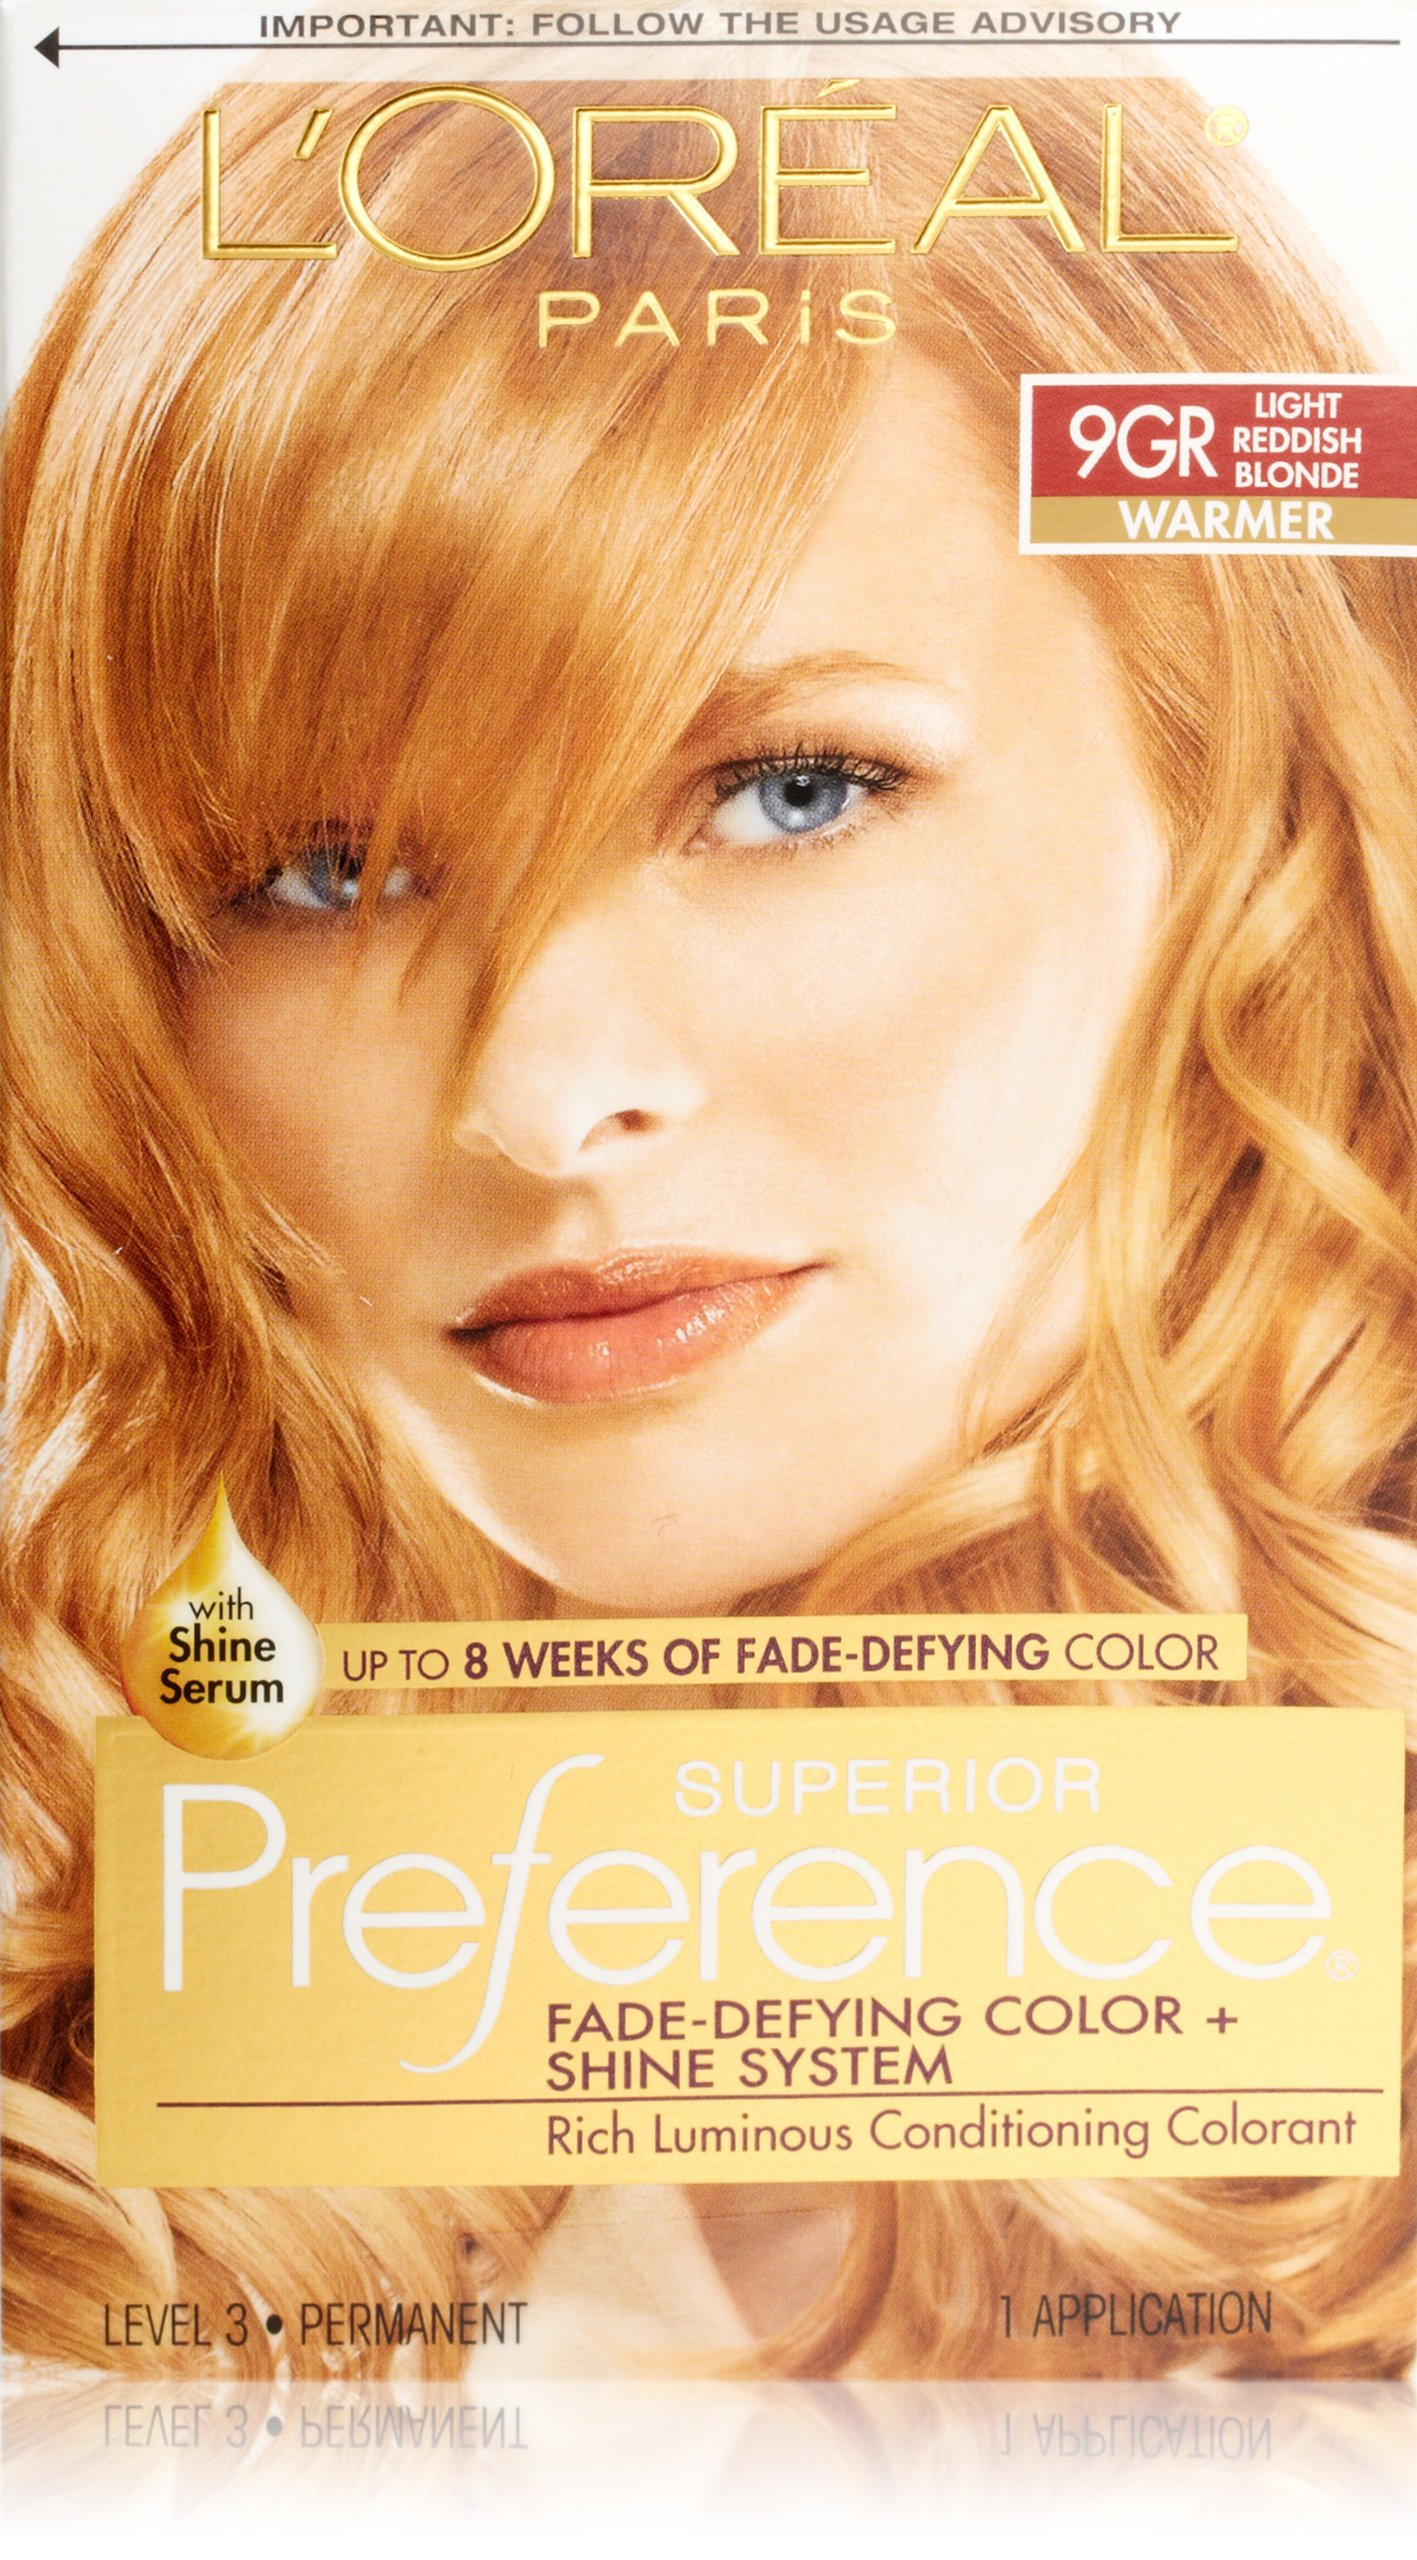 Light Reddish Blonde Hair Amazon.com : Ga...